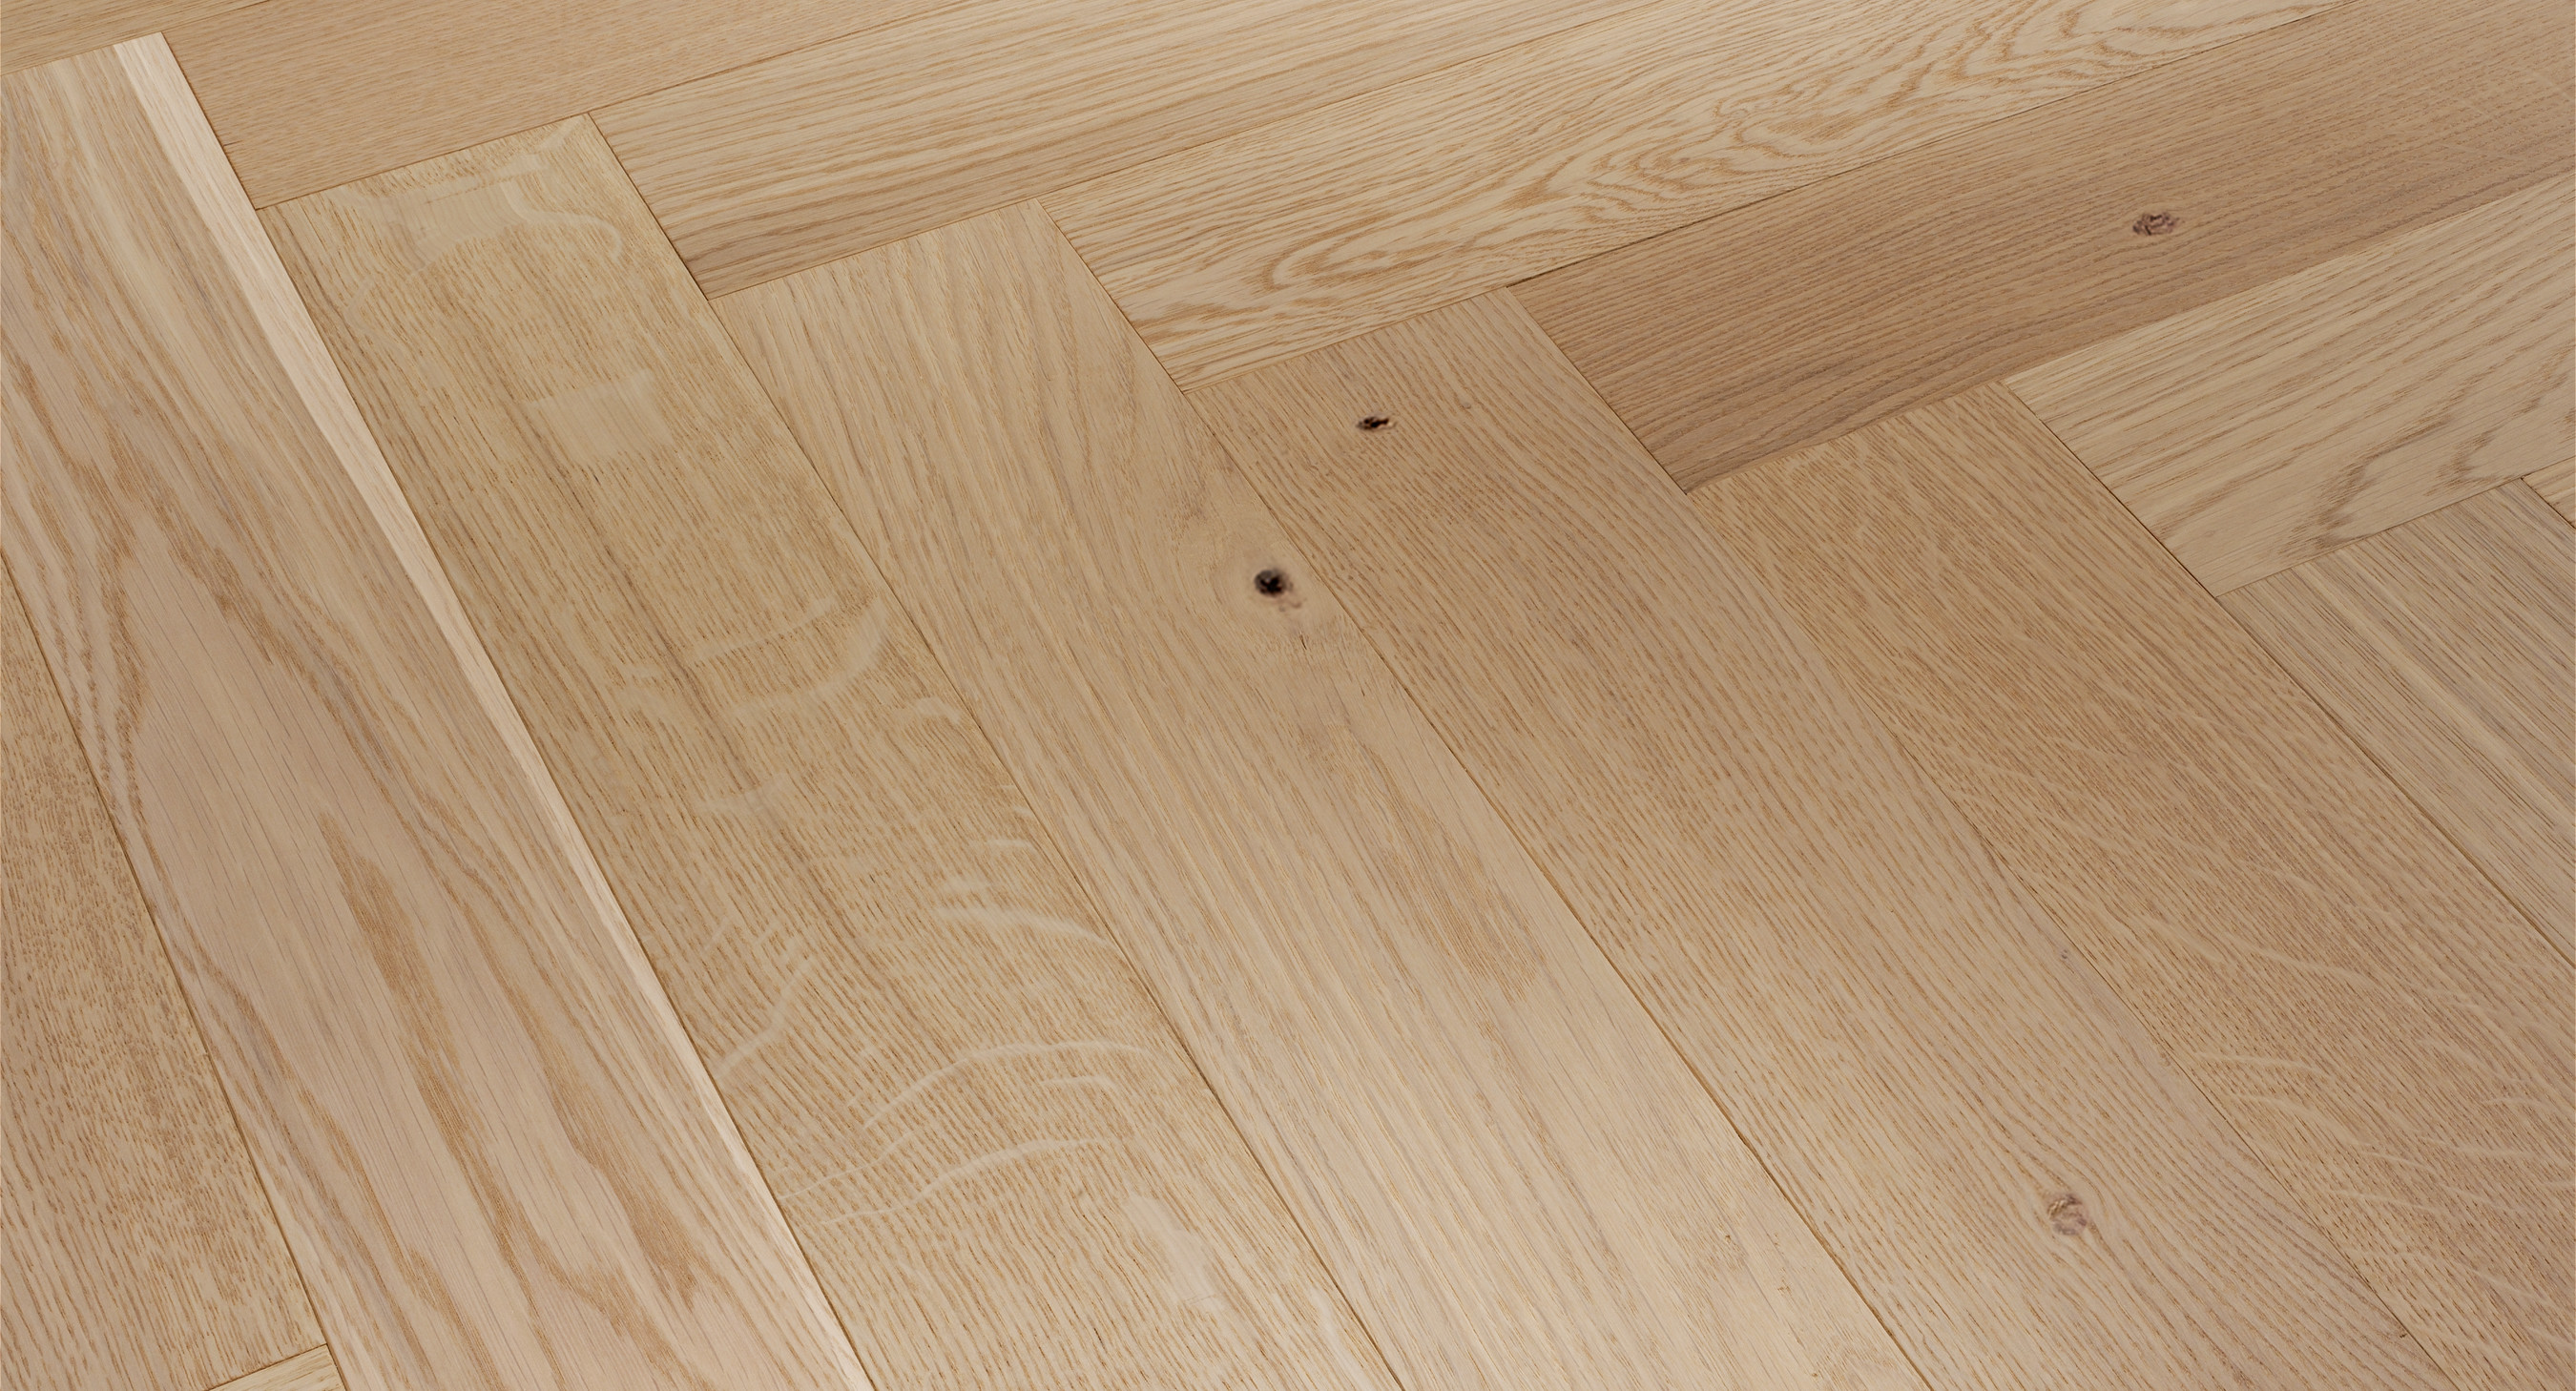 hardwood flooring business of trendtime engineered wood flooring products parador with 45a